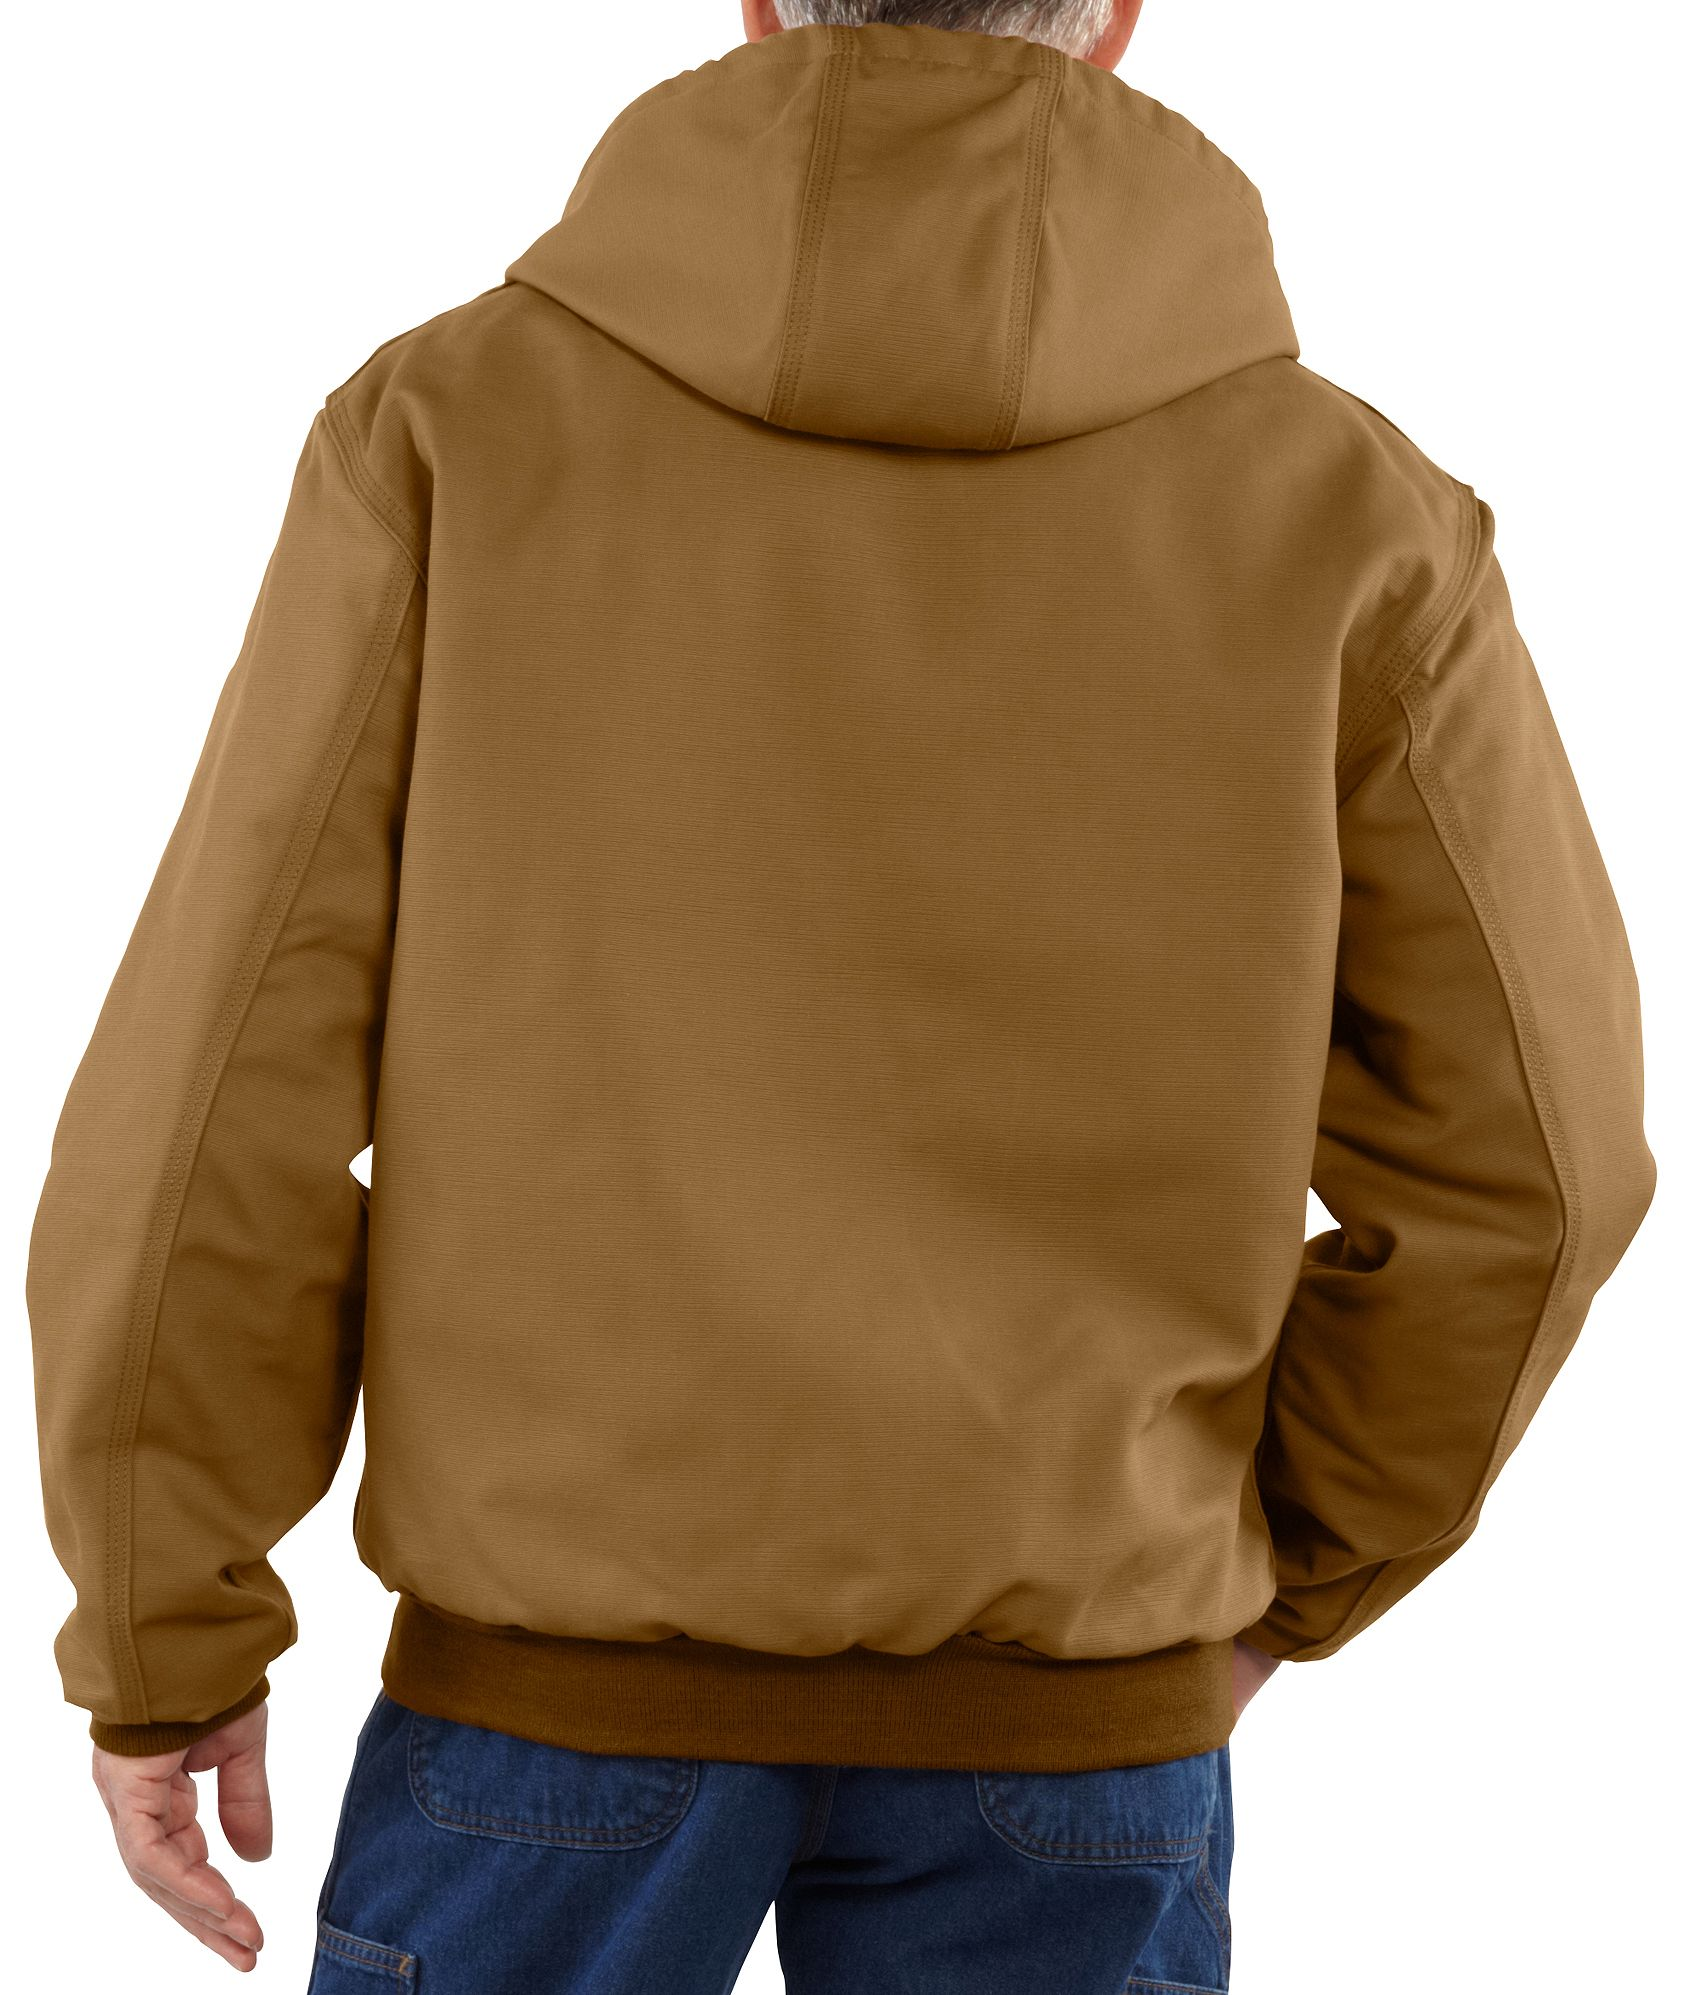 bd2f738bf7d0 Carhartt Flame Resistant Midweight Active Jacket